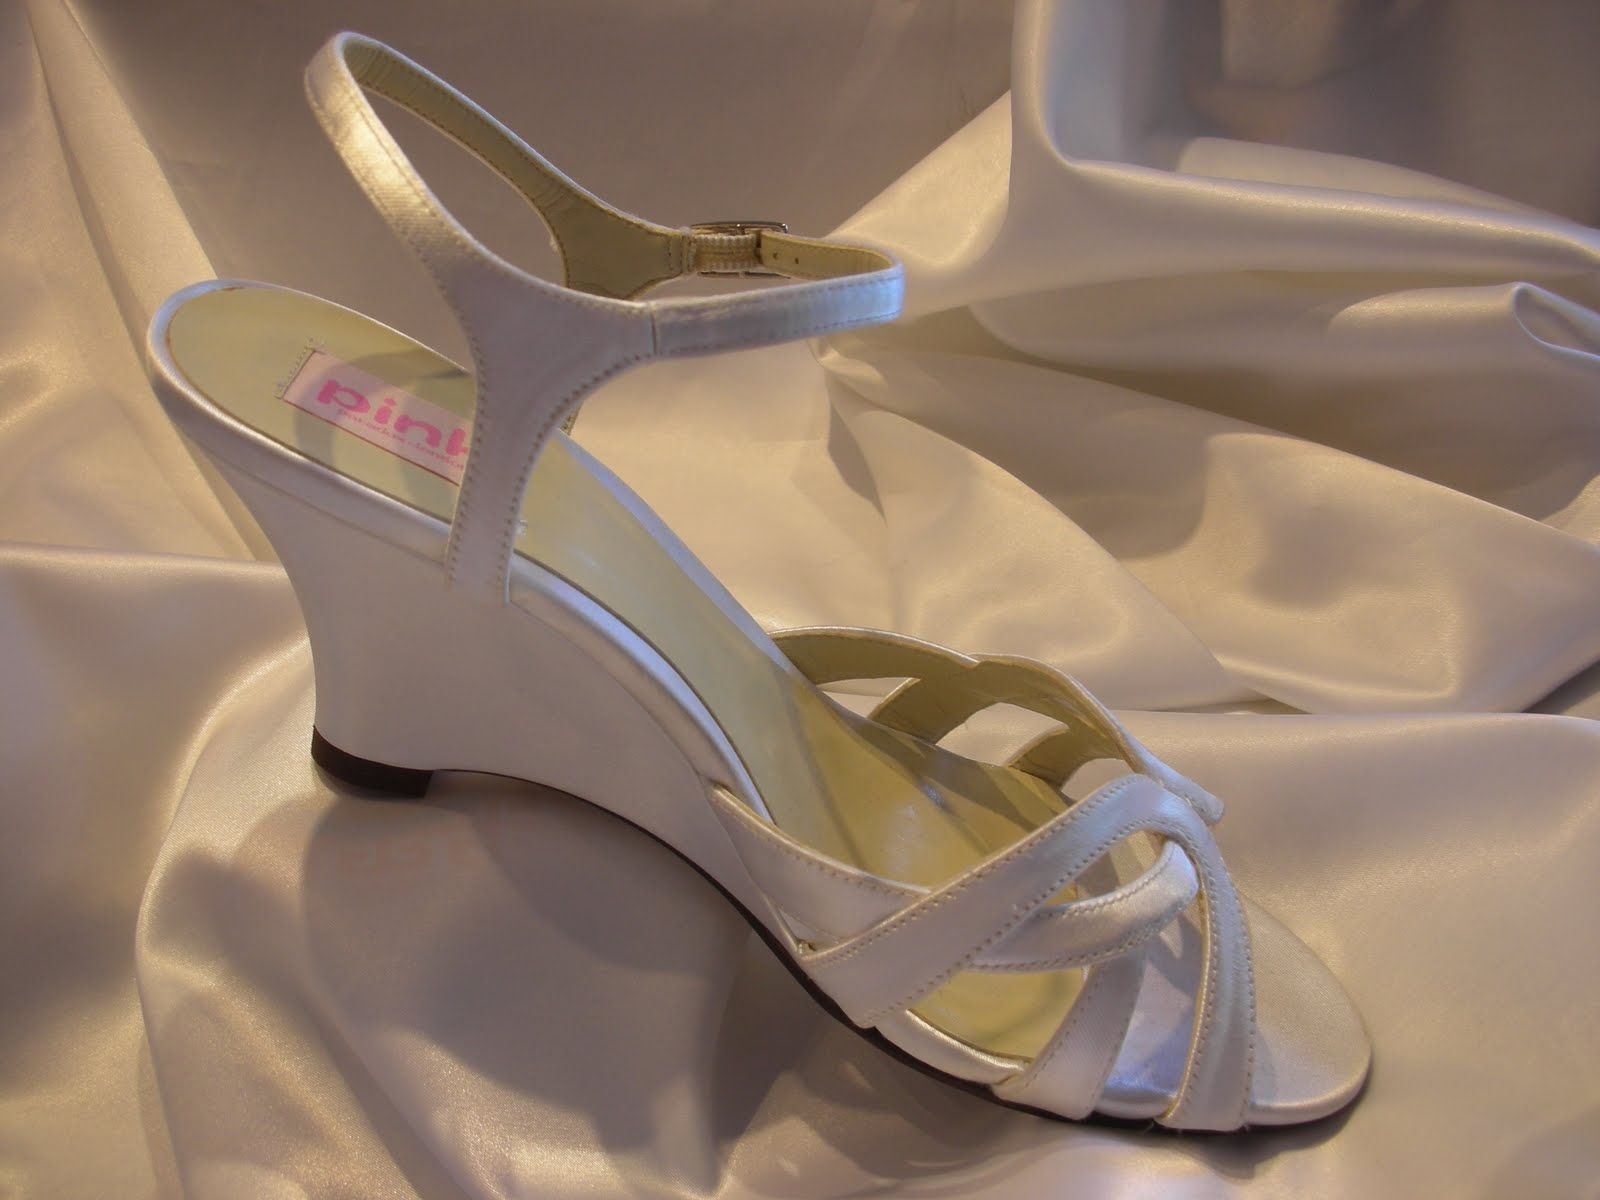 8db22015a Dressy Wedge Sandals for Weddings | Shoes for Beach Weddings ...